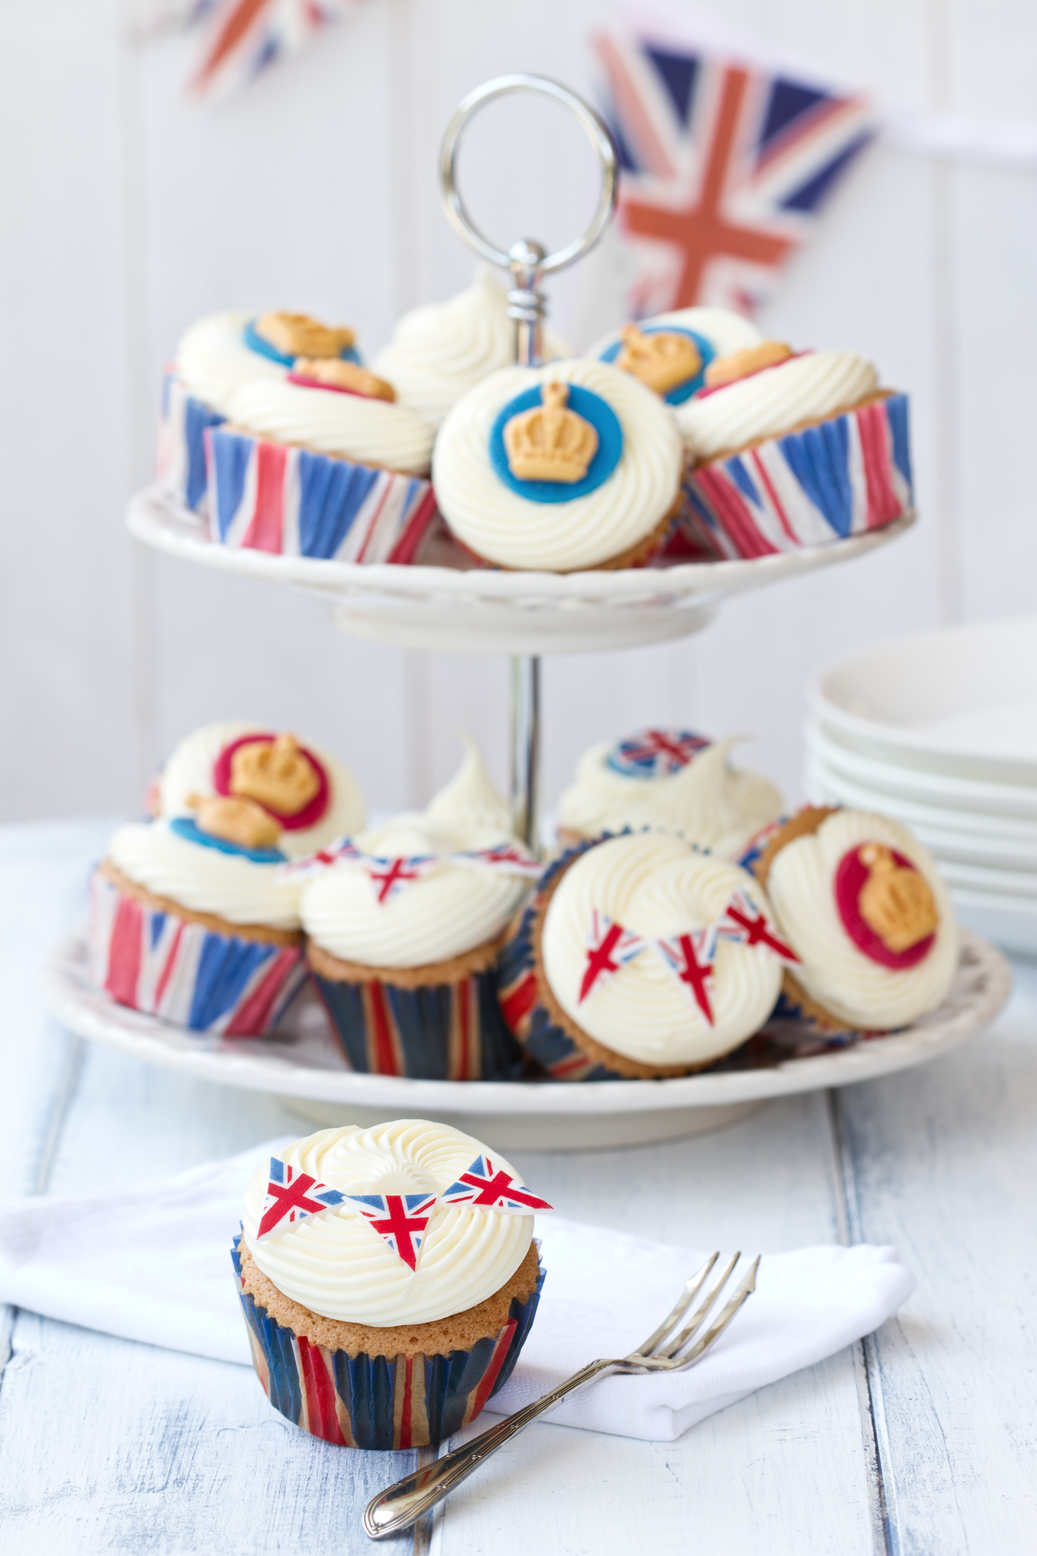 Cupcakes to celebrate the Diamond Jubilee of Queen Elizabeth II